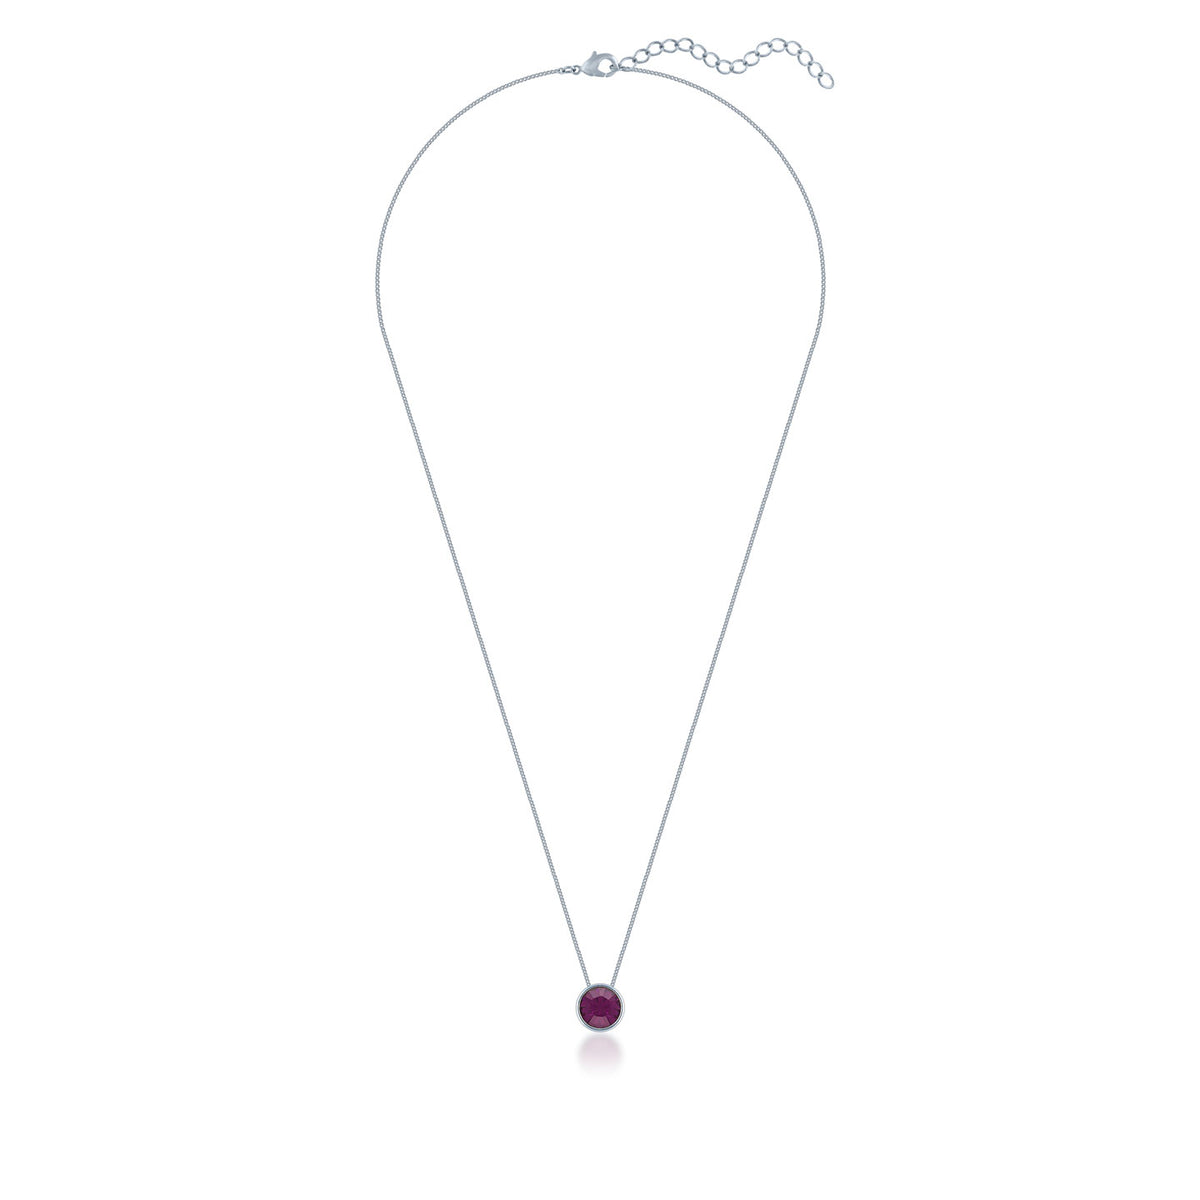 Harley Small Pendant Necklace with Purple Amethyst Round Crystals from Swarovski Silver Toned Rhodium Plated - Ed Heart